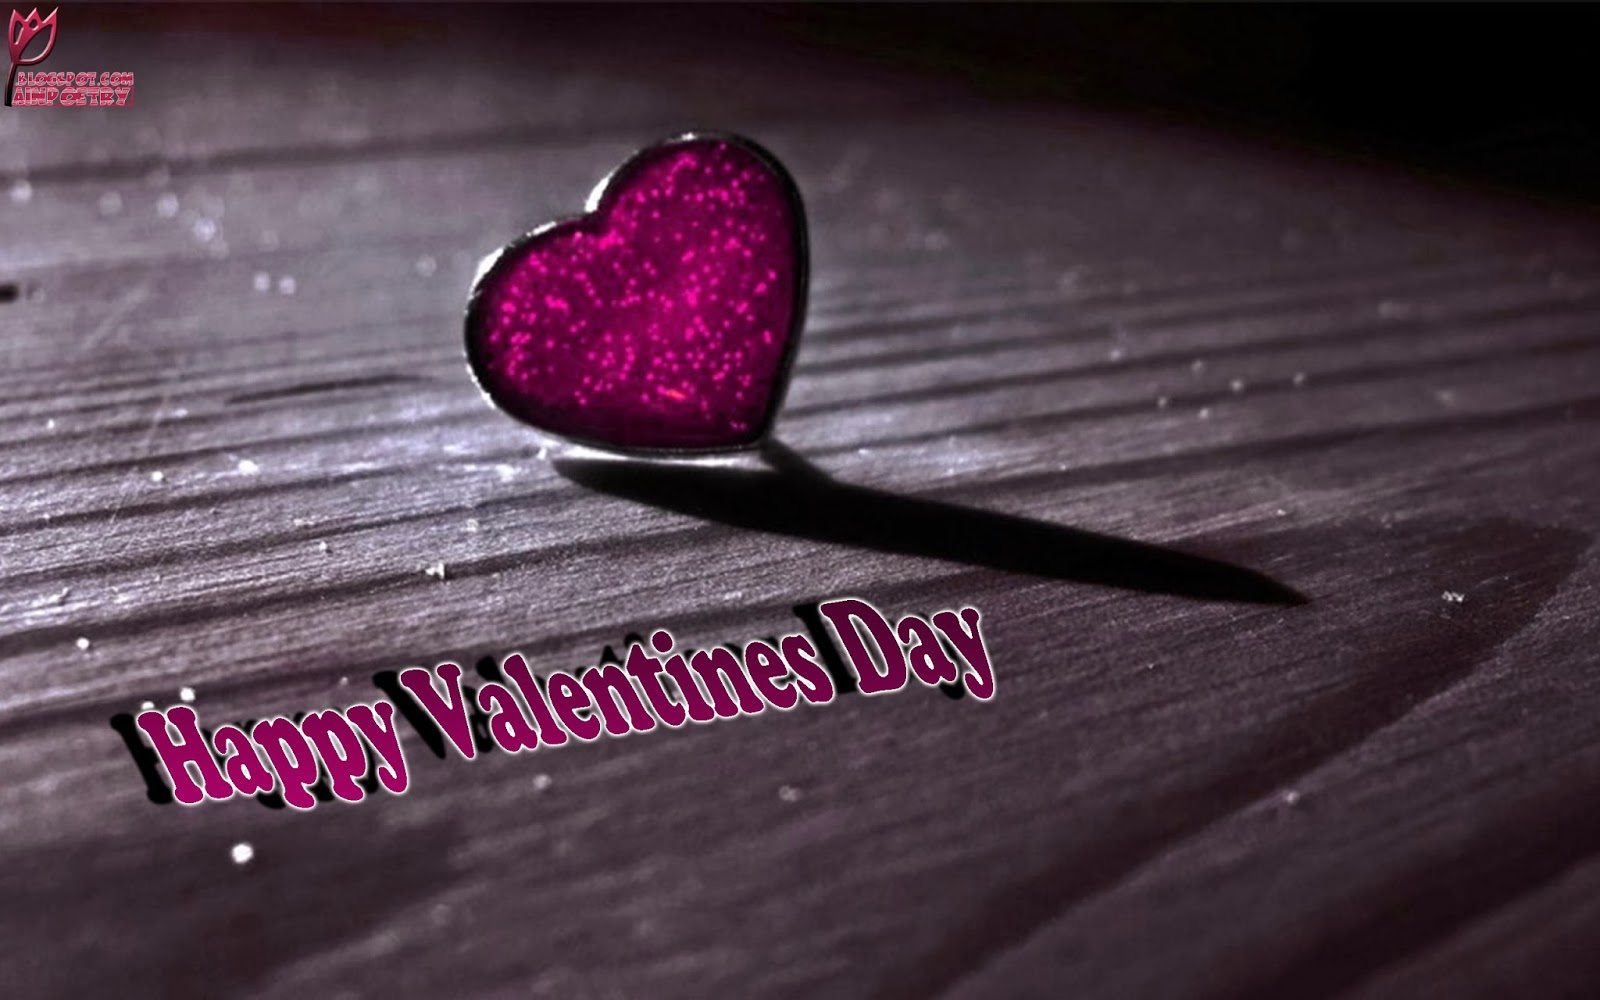 Happy-Valentines-Day-Wishes-Wallpaper-With-Heart-Image-HD-Wide